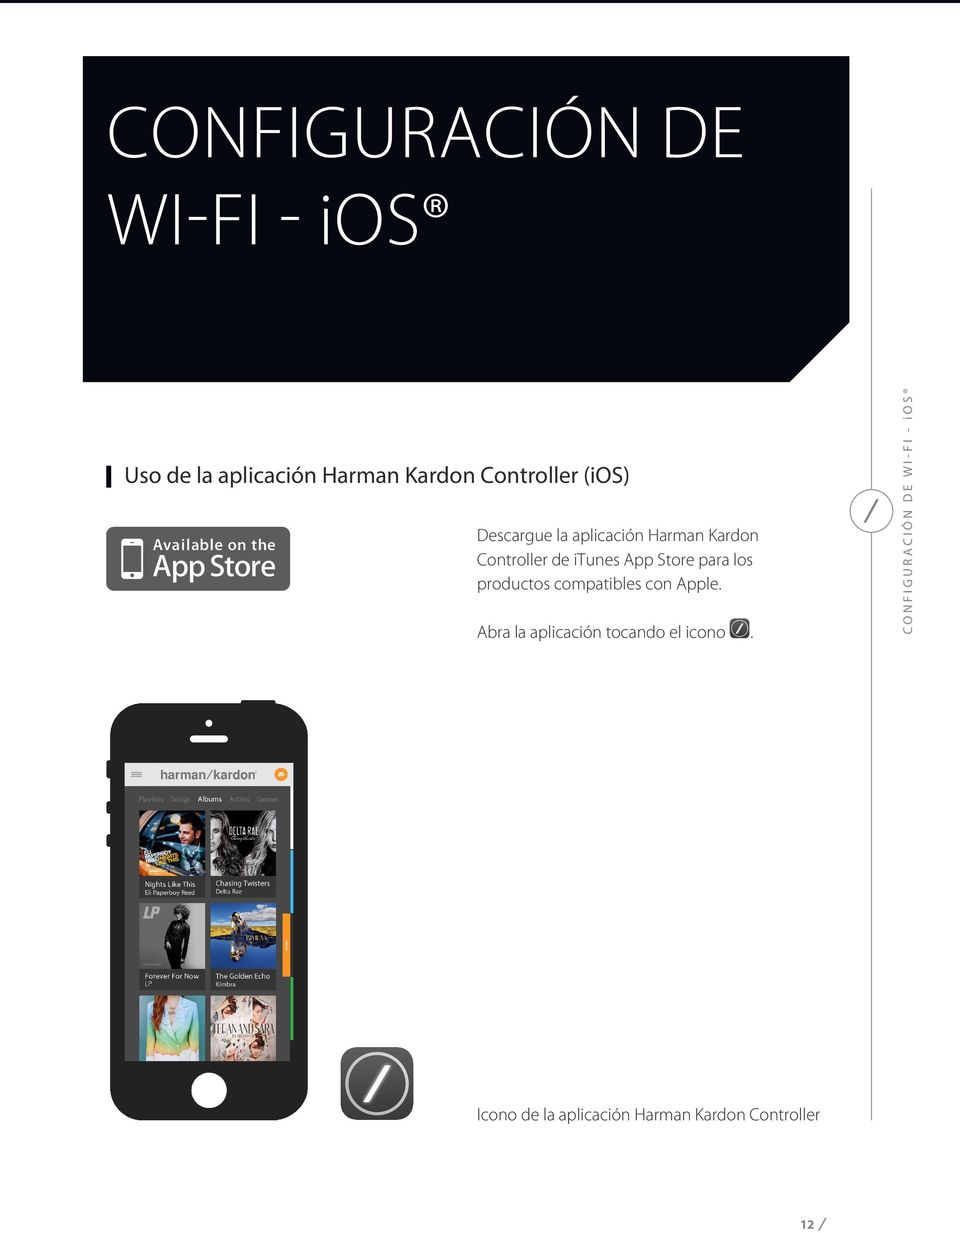 para los productos compatibles con Apple.